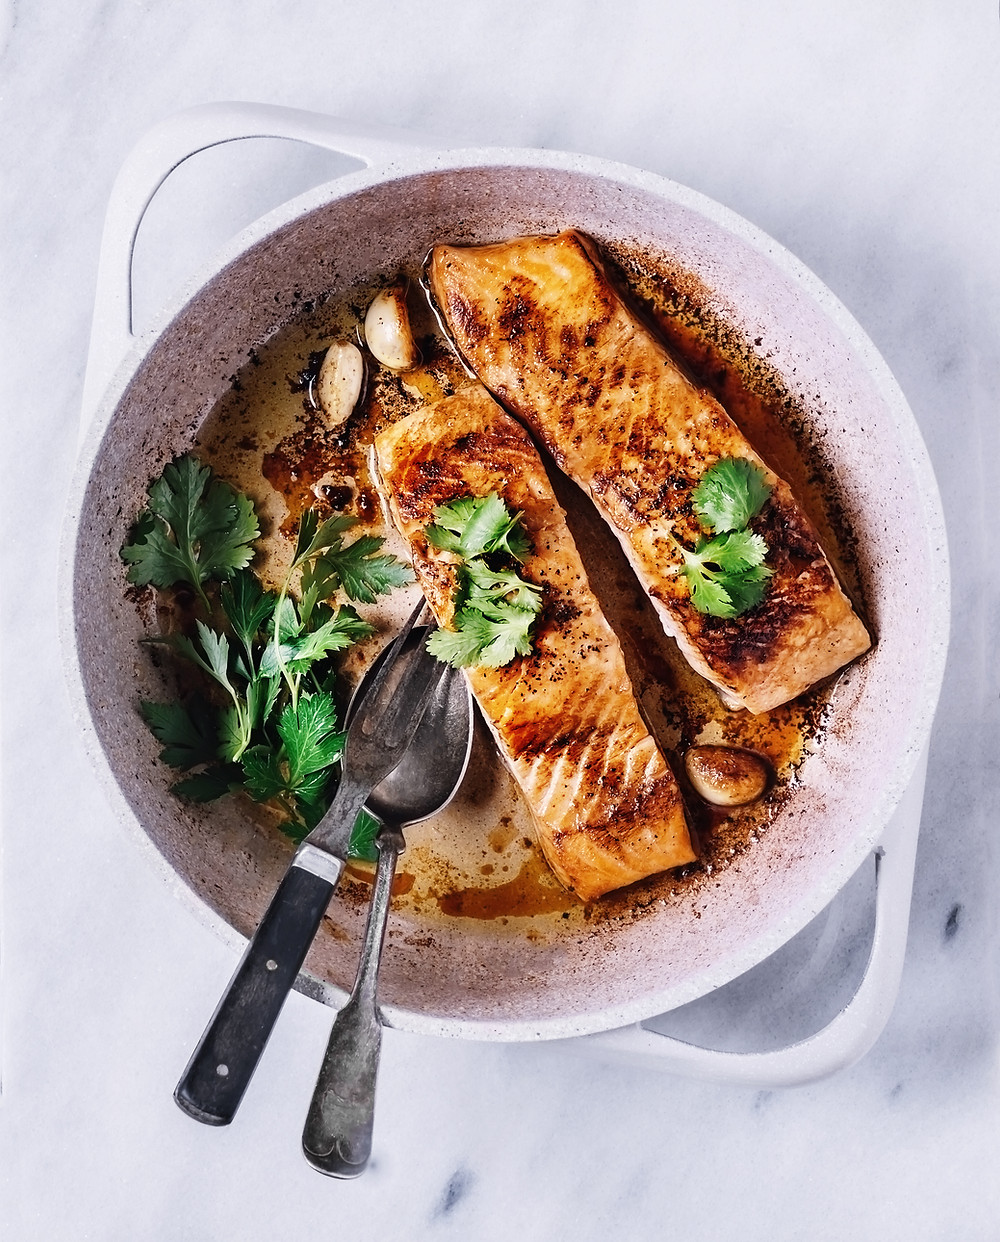 salmon in a bowl with garlic and greens